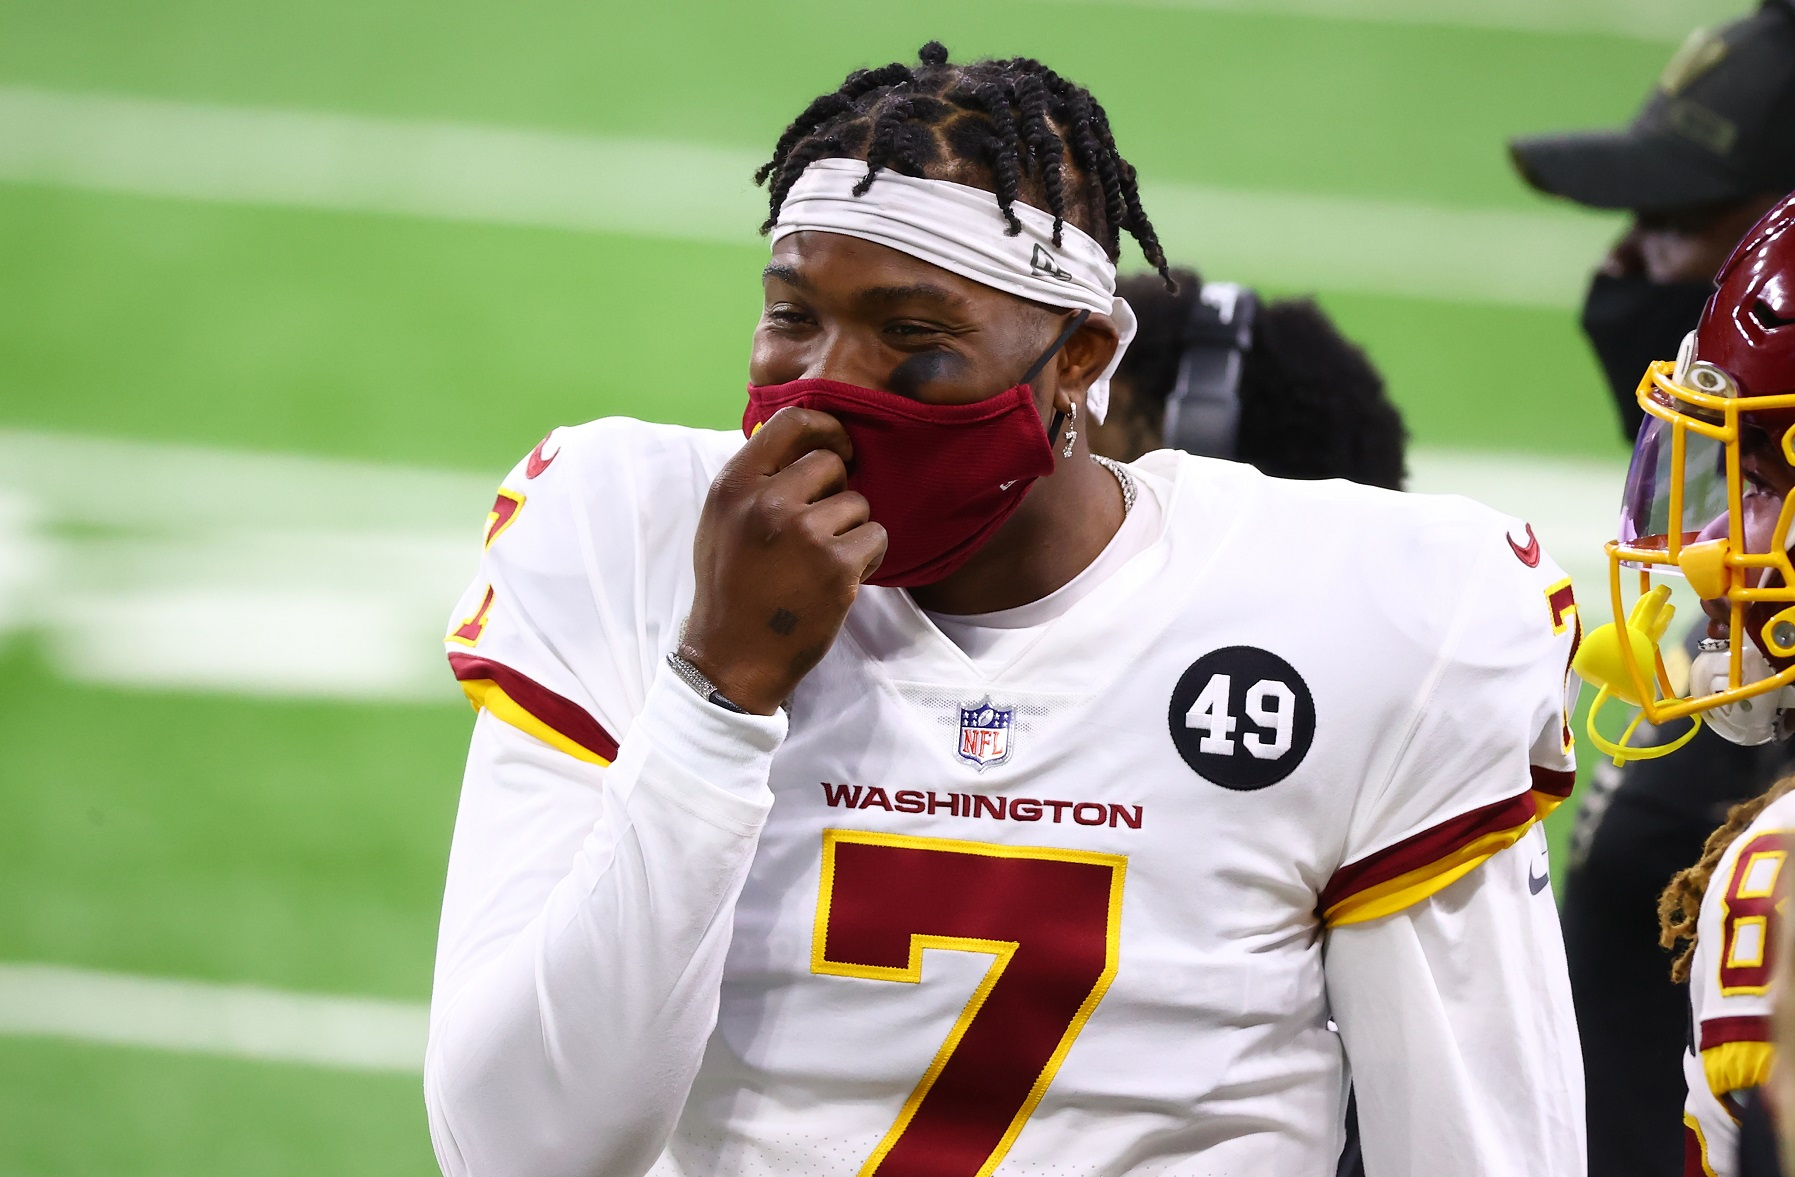 Kyler Murray Aside, Drafting Quarterbacks in 2019 Turned Out To Be a Terrible Idea